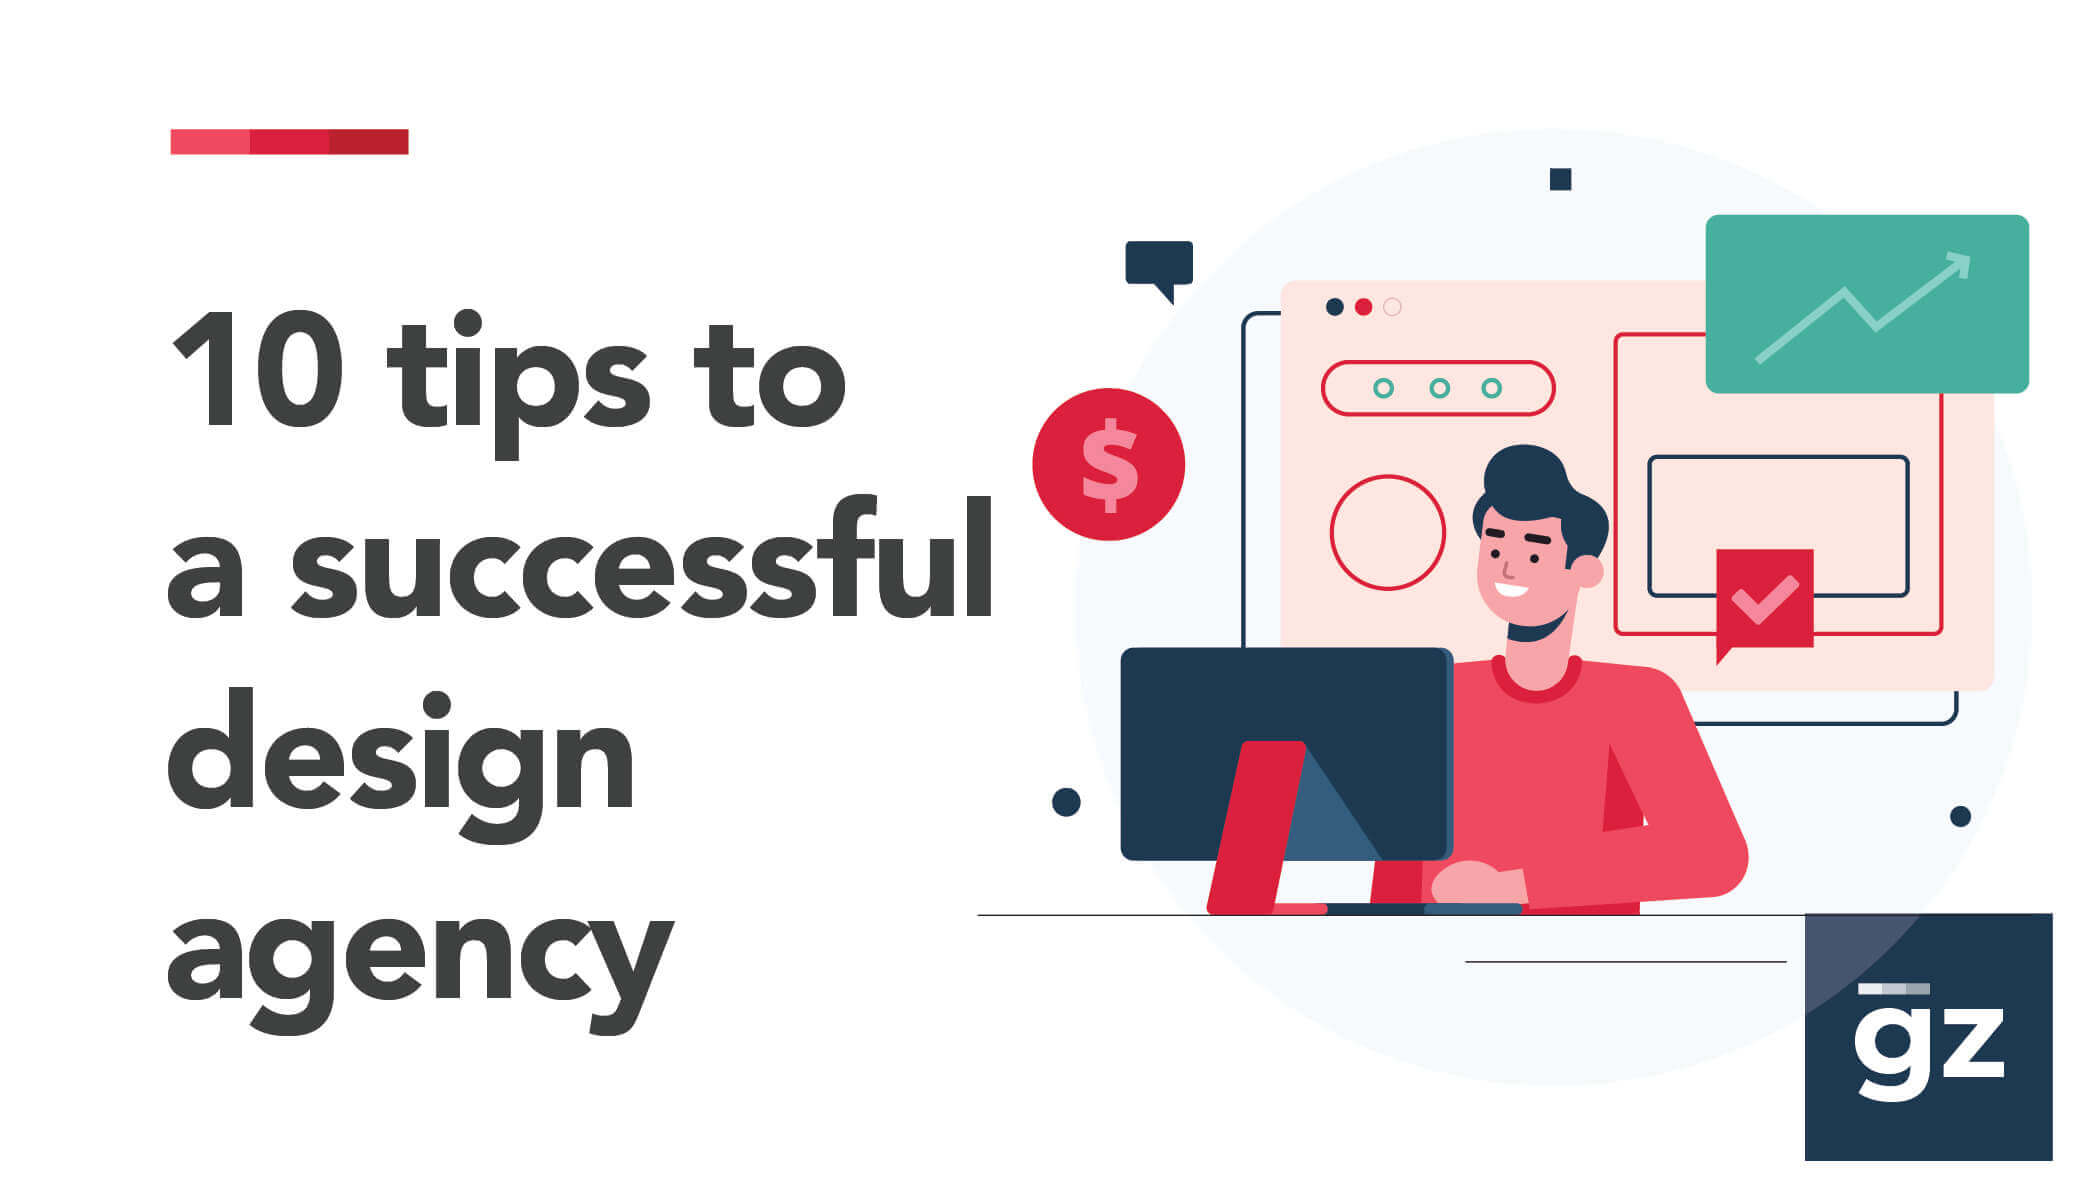 10 Tips to a Successful Design Agency